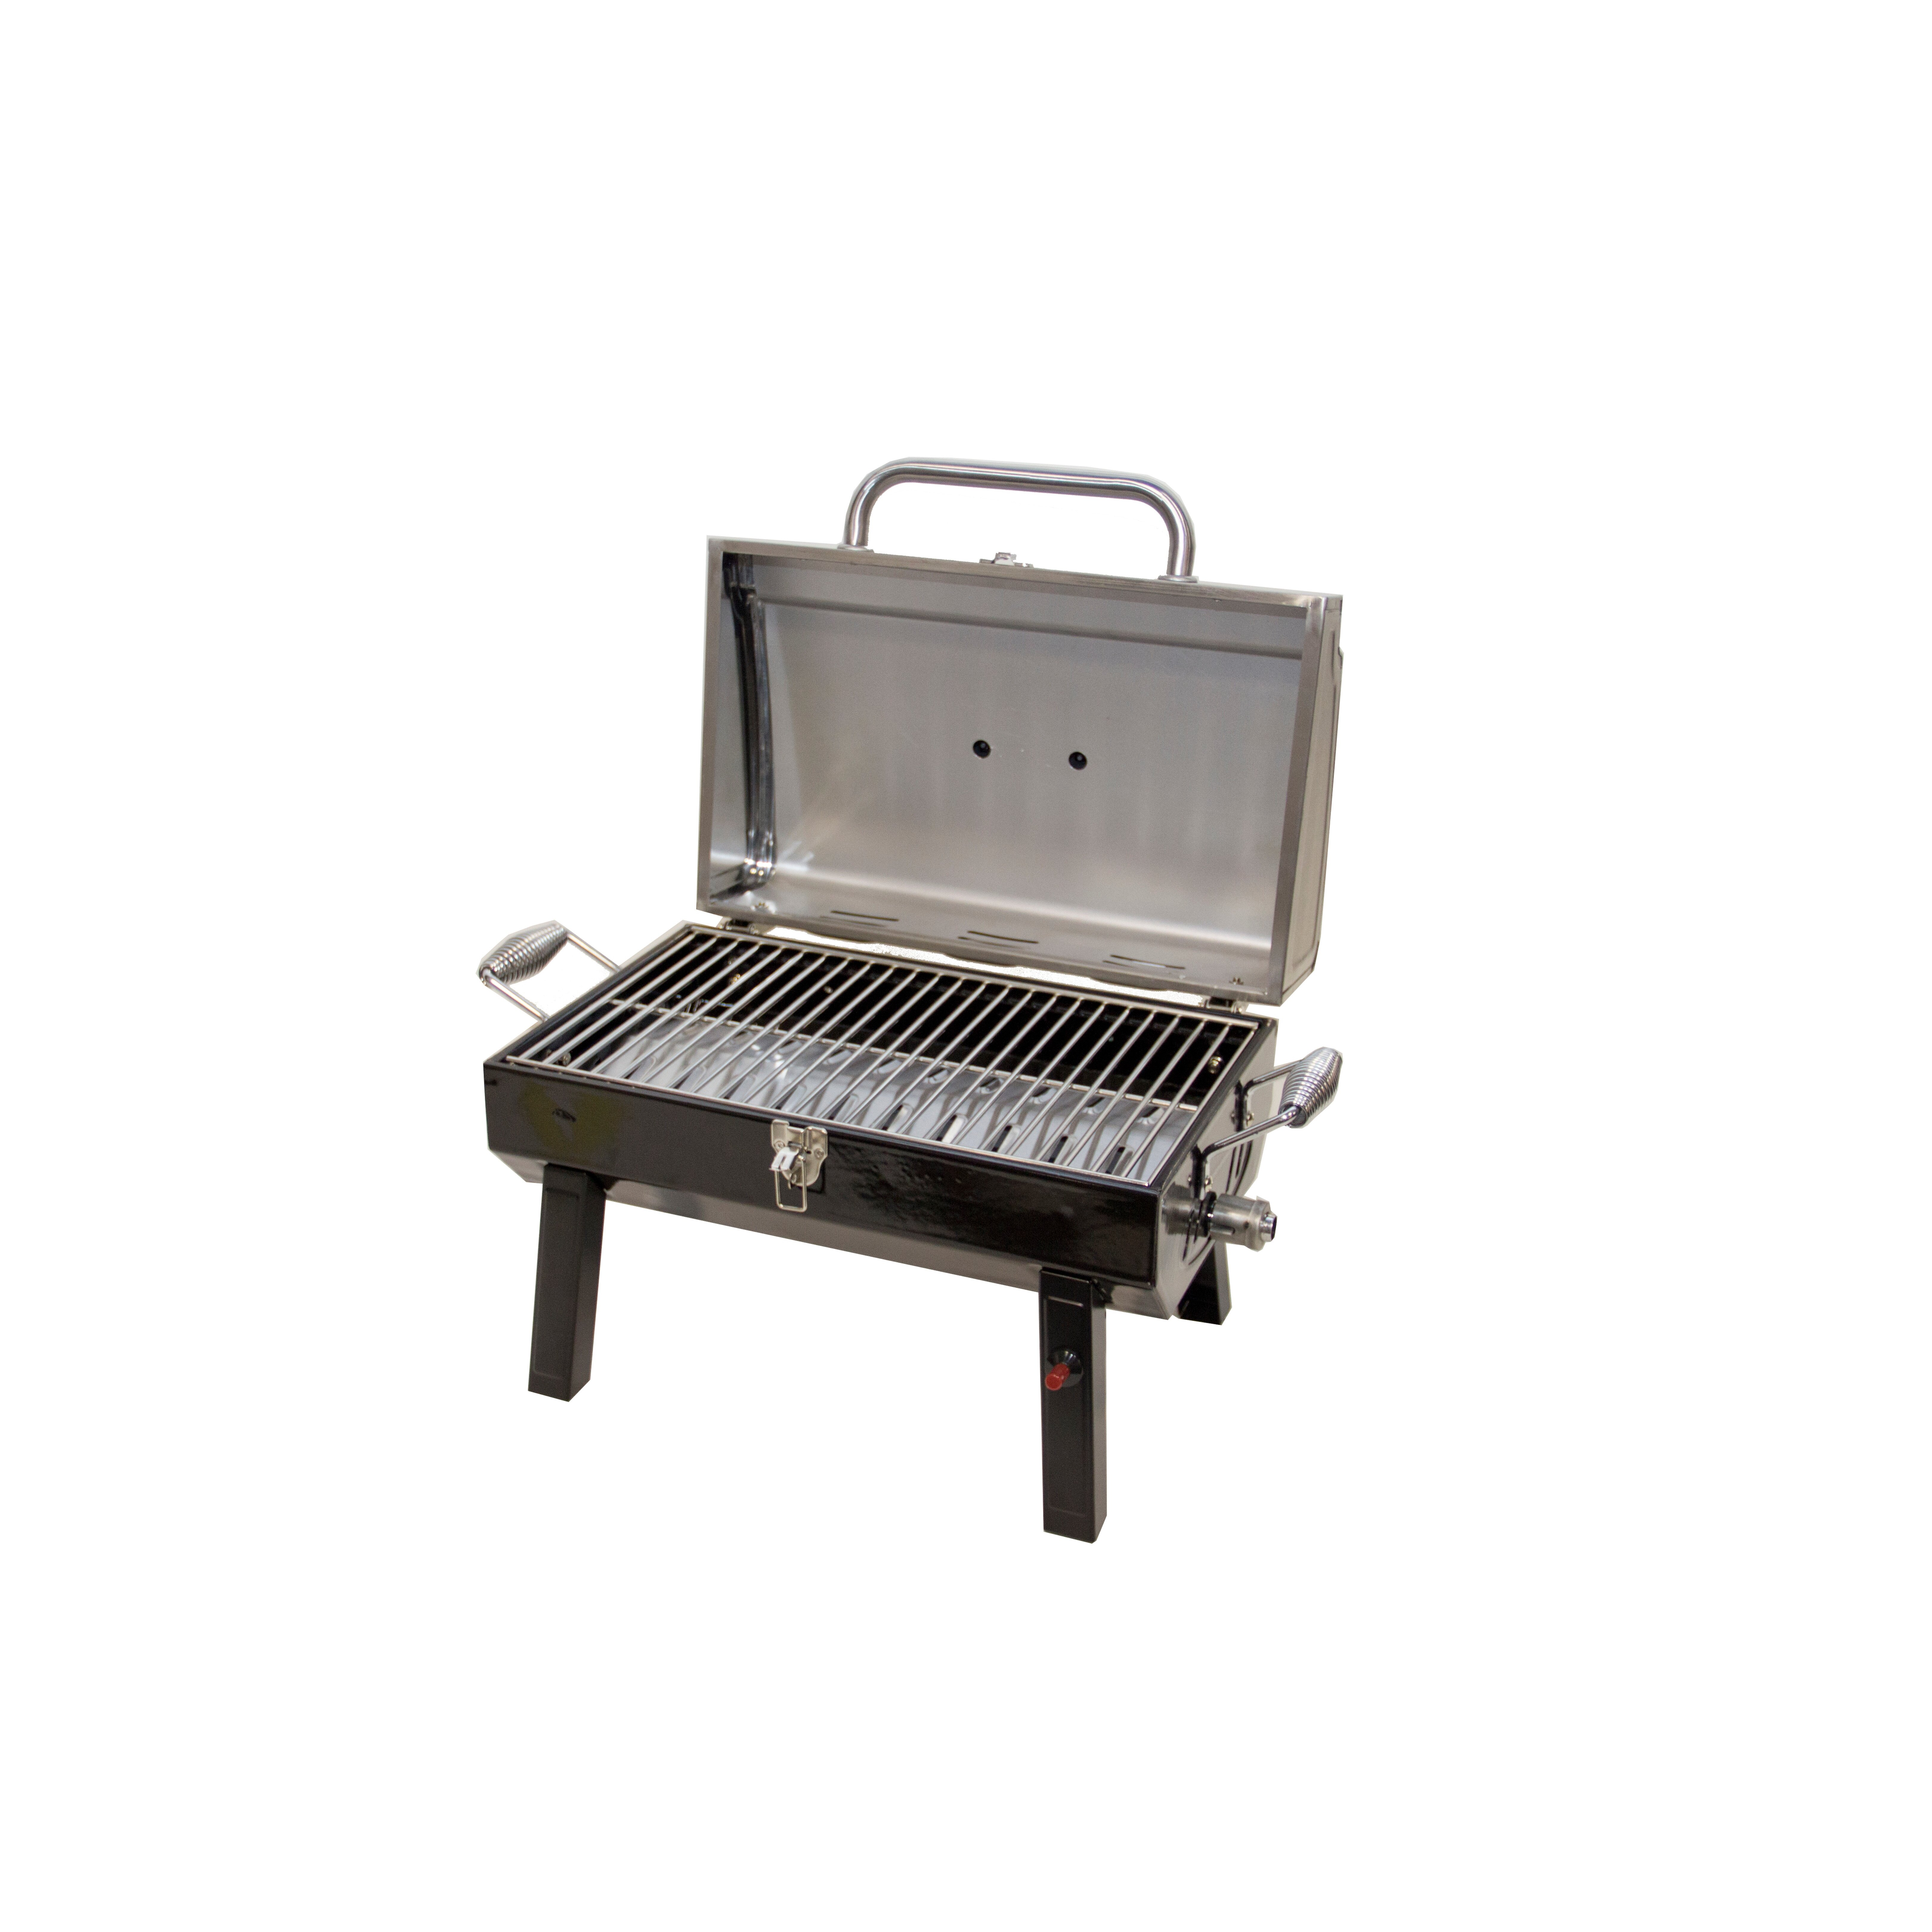 Charbroil Deluxe 1 Burner Portable Propane Gas Grill Reviews .